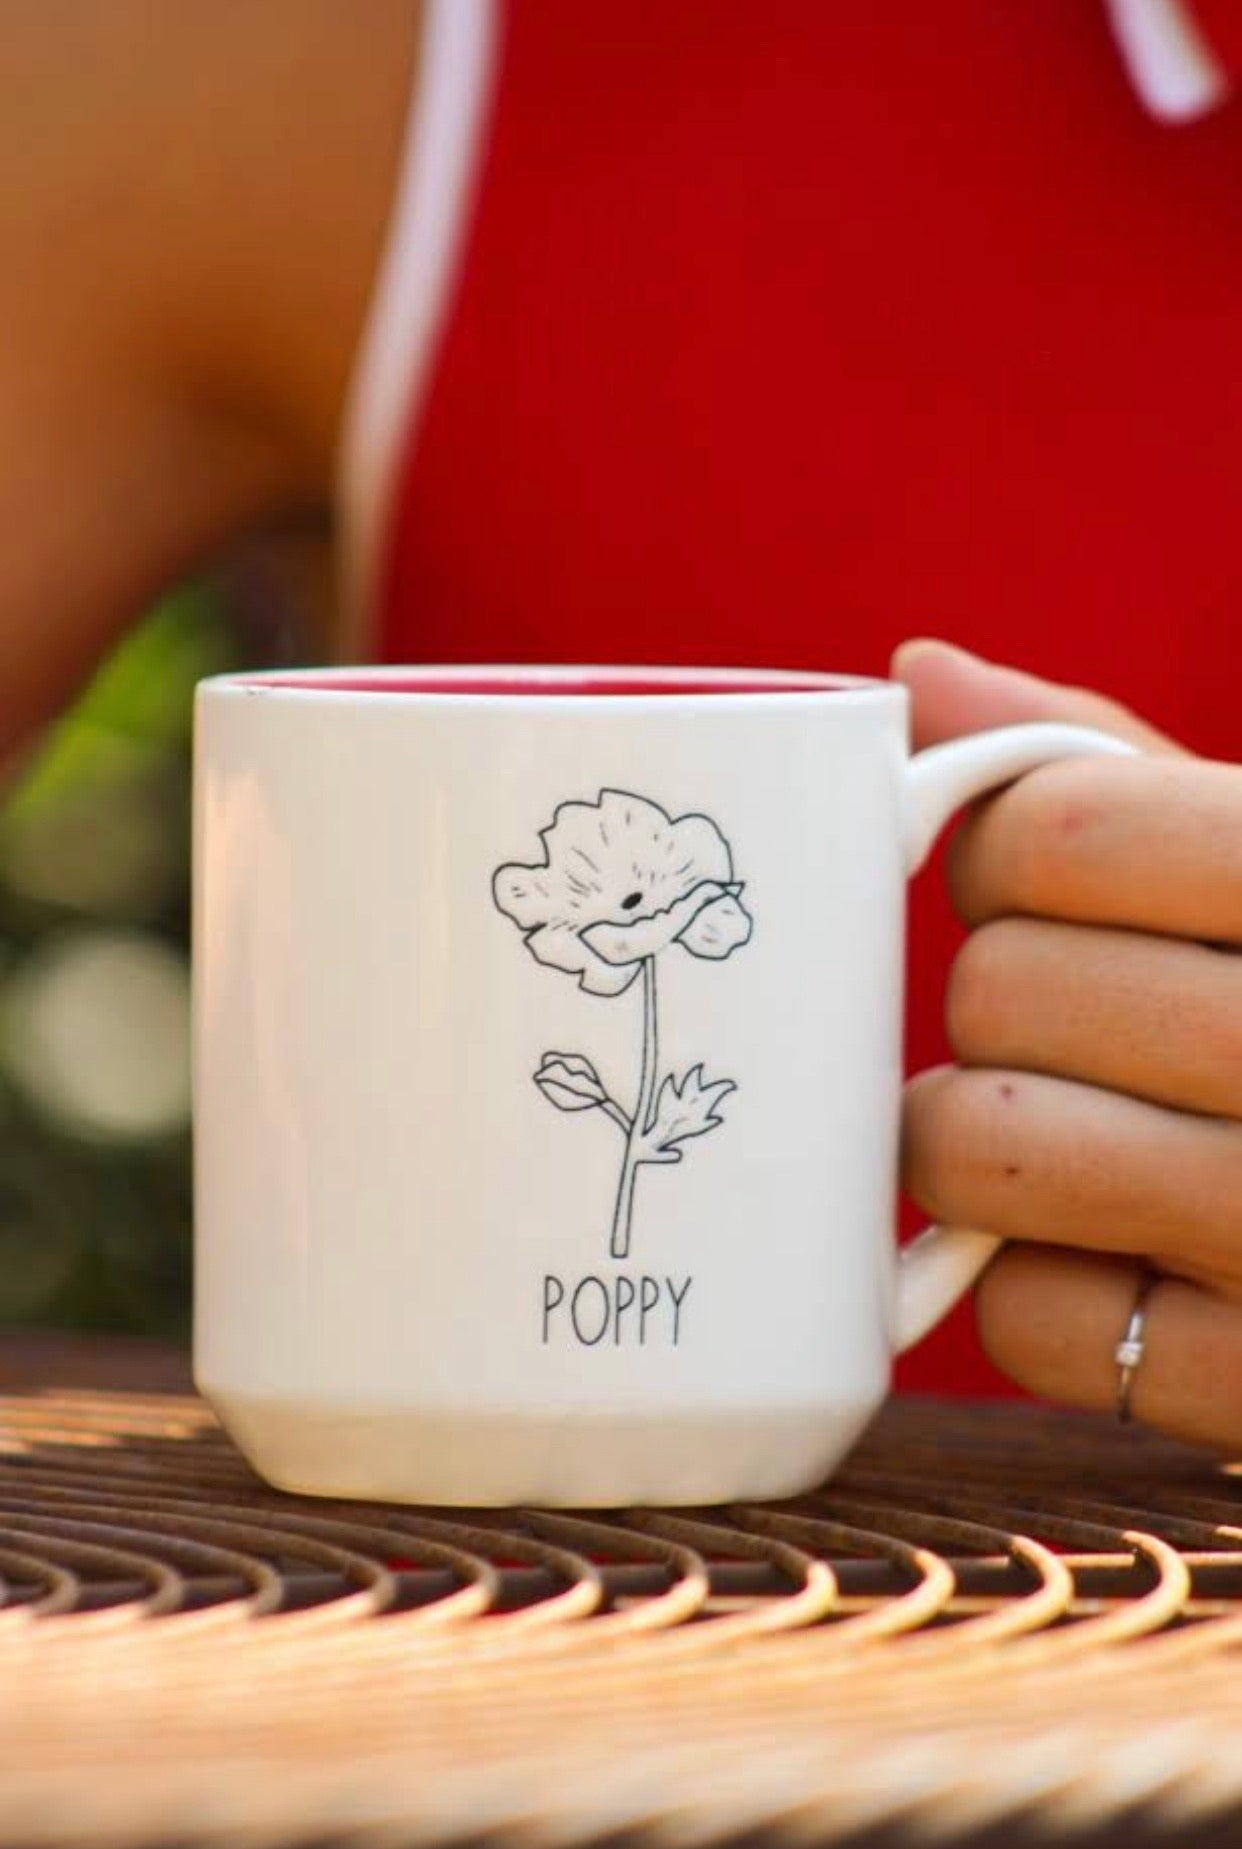 Poppy Mug by Michael Shaw